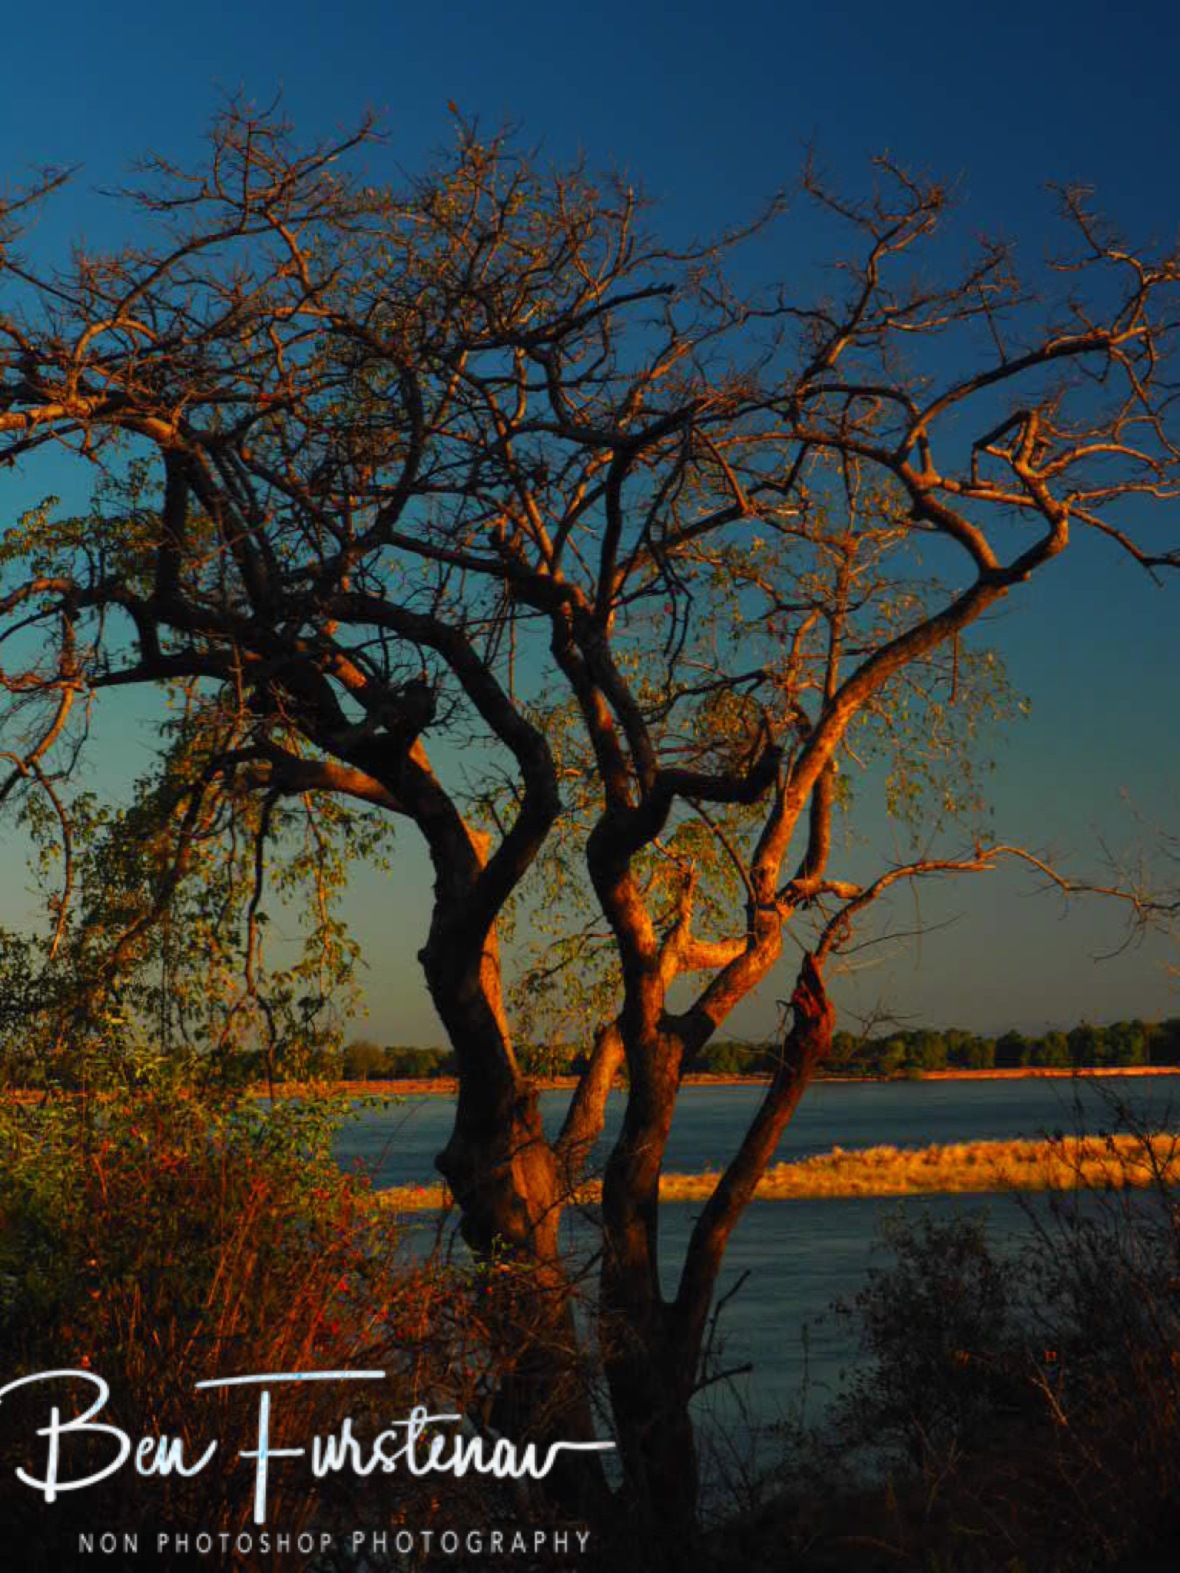 Almost sunset on the mighty Zambezi River, Lower Zambezi Valley, Zambia